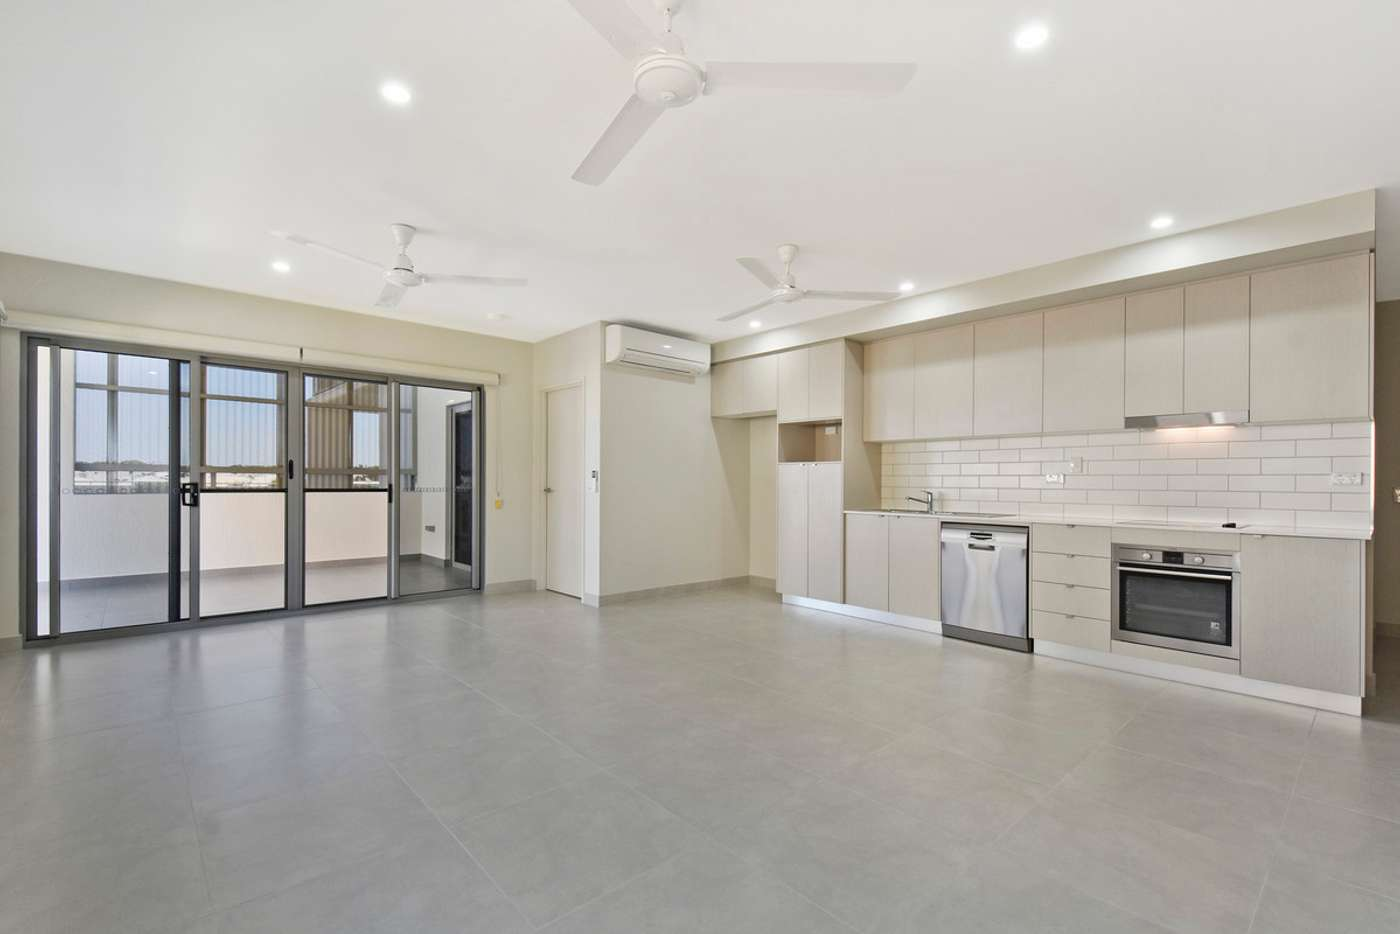 Main view of Homely apartment listing, 164 Forrest Parade, Rosebery NT 832